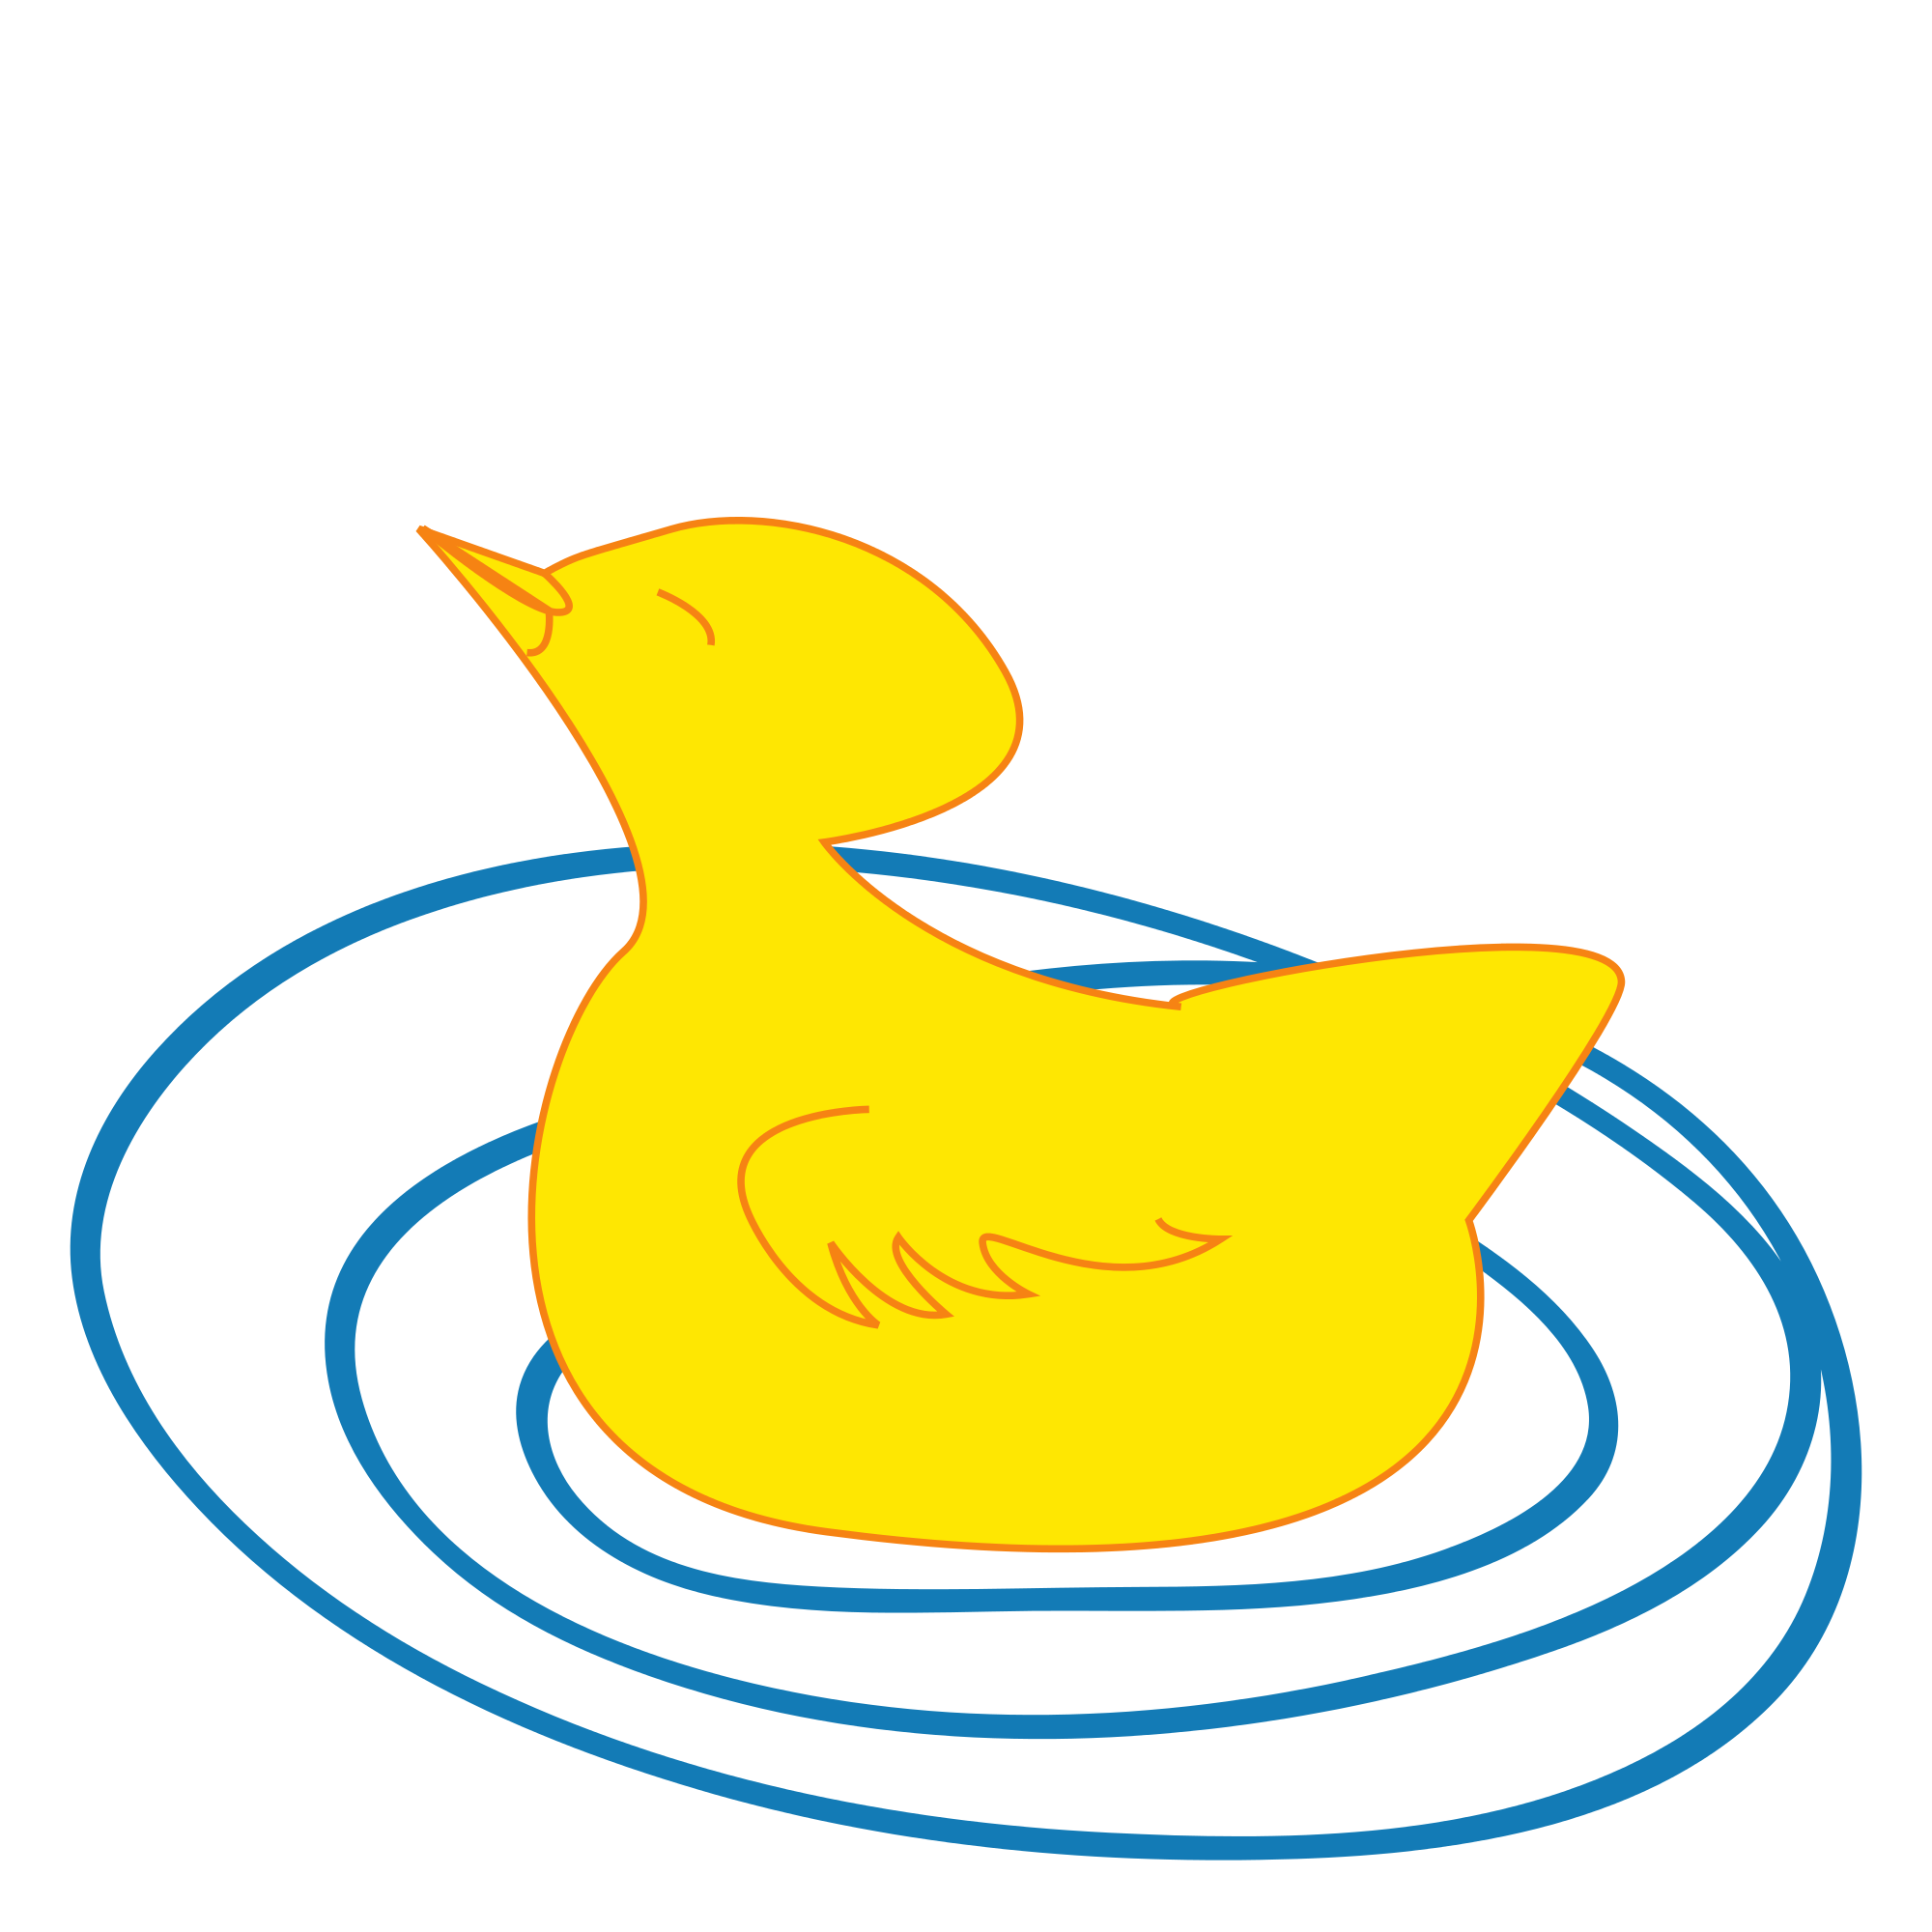 clip freeuse library File of a duckling. Duck svg drawing